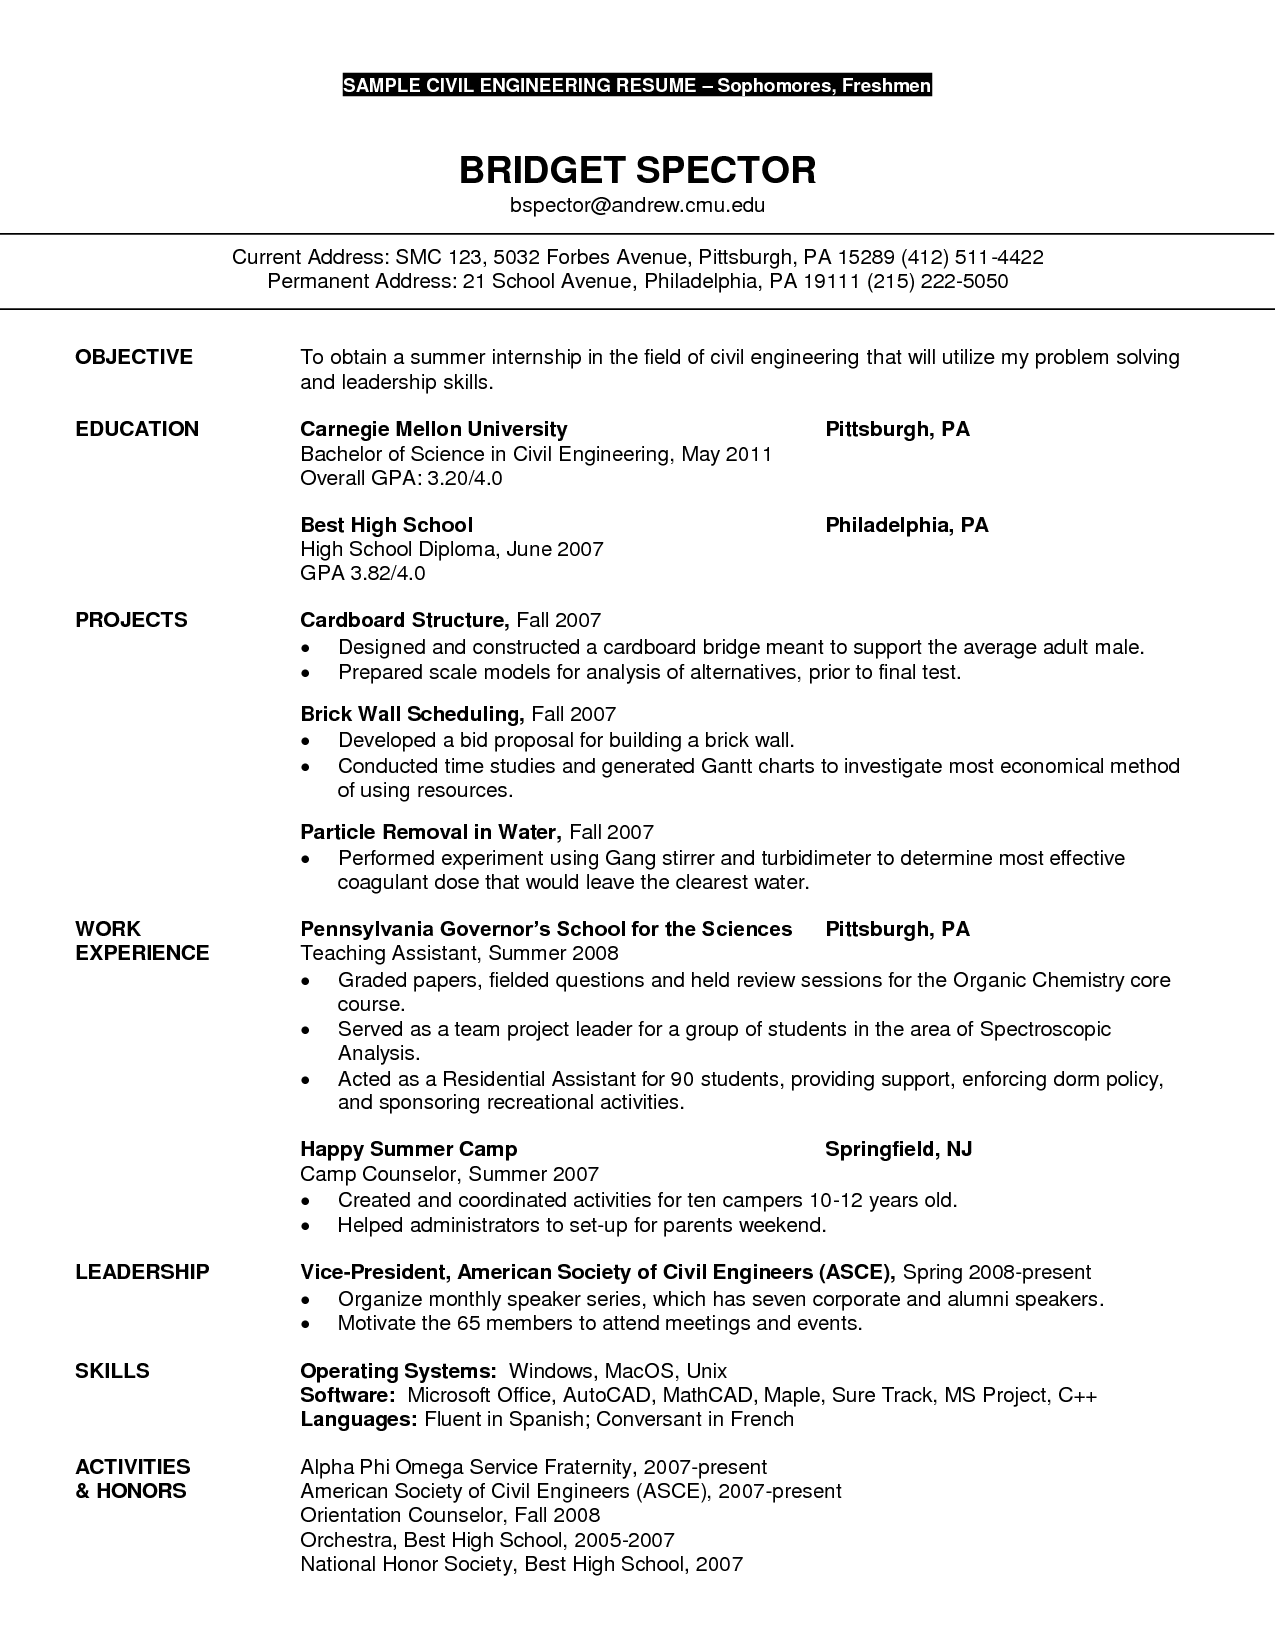 Resume Objective For Civil Engineering Student Civil Engineer Resume Sample Http Resumecareer